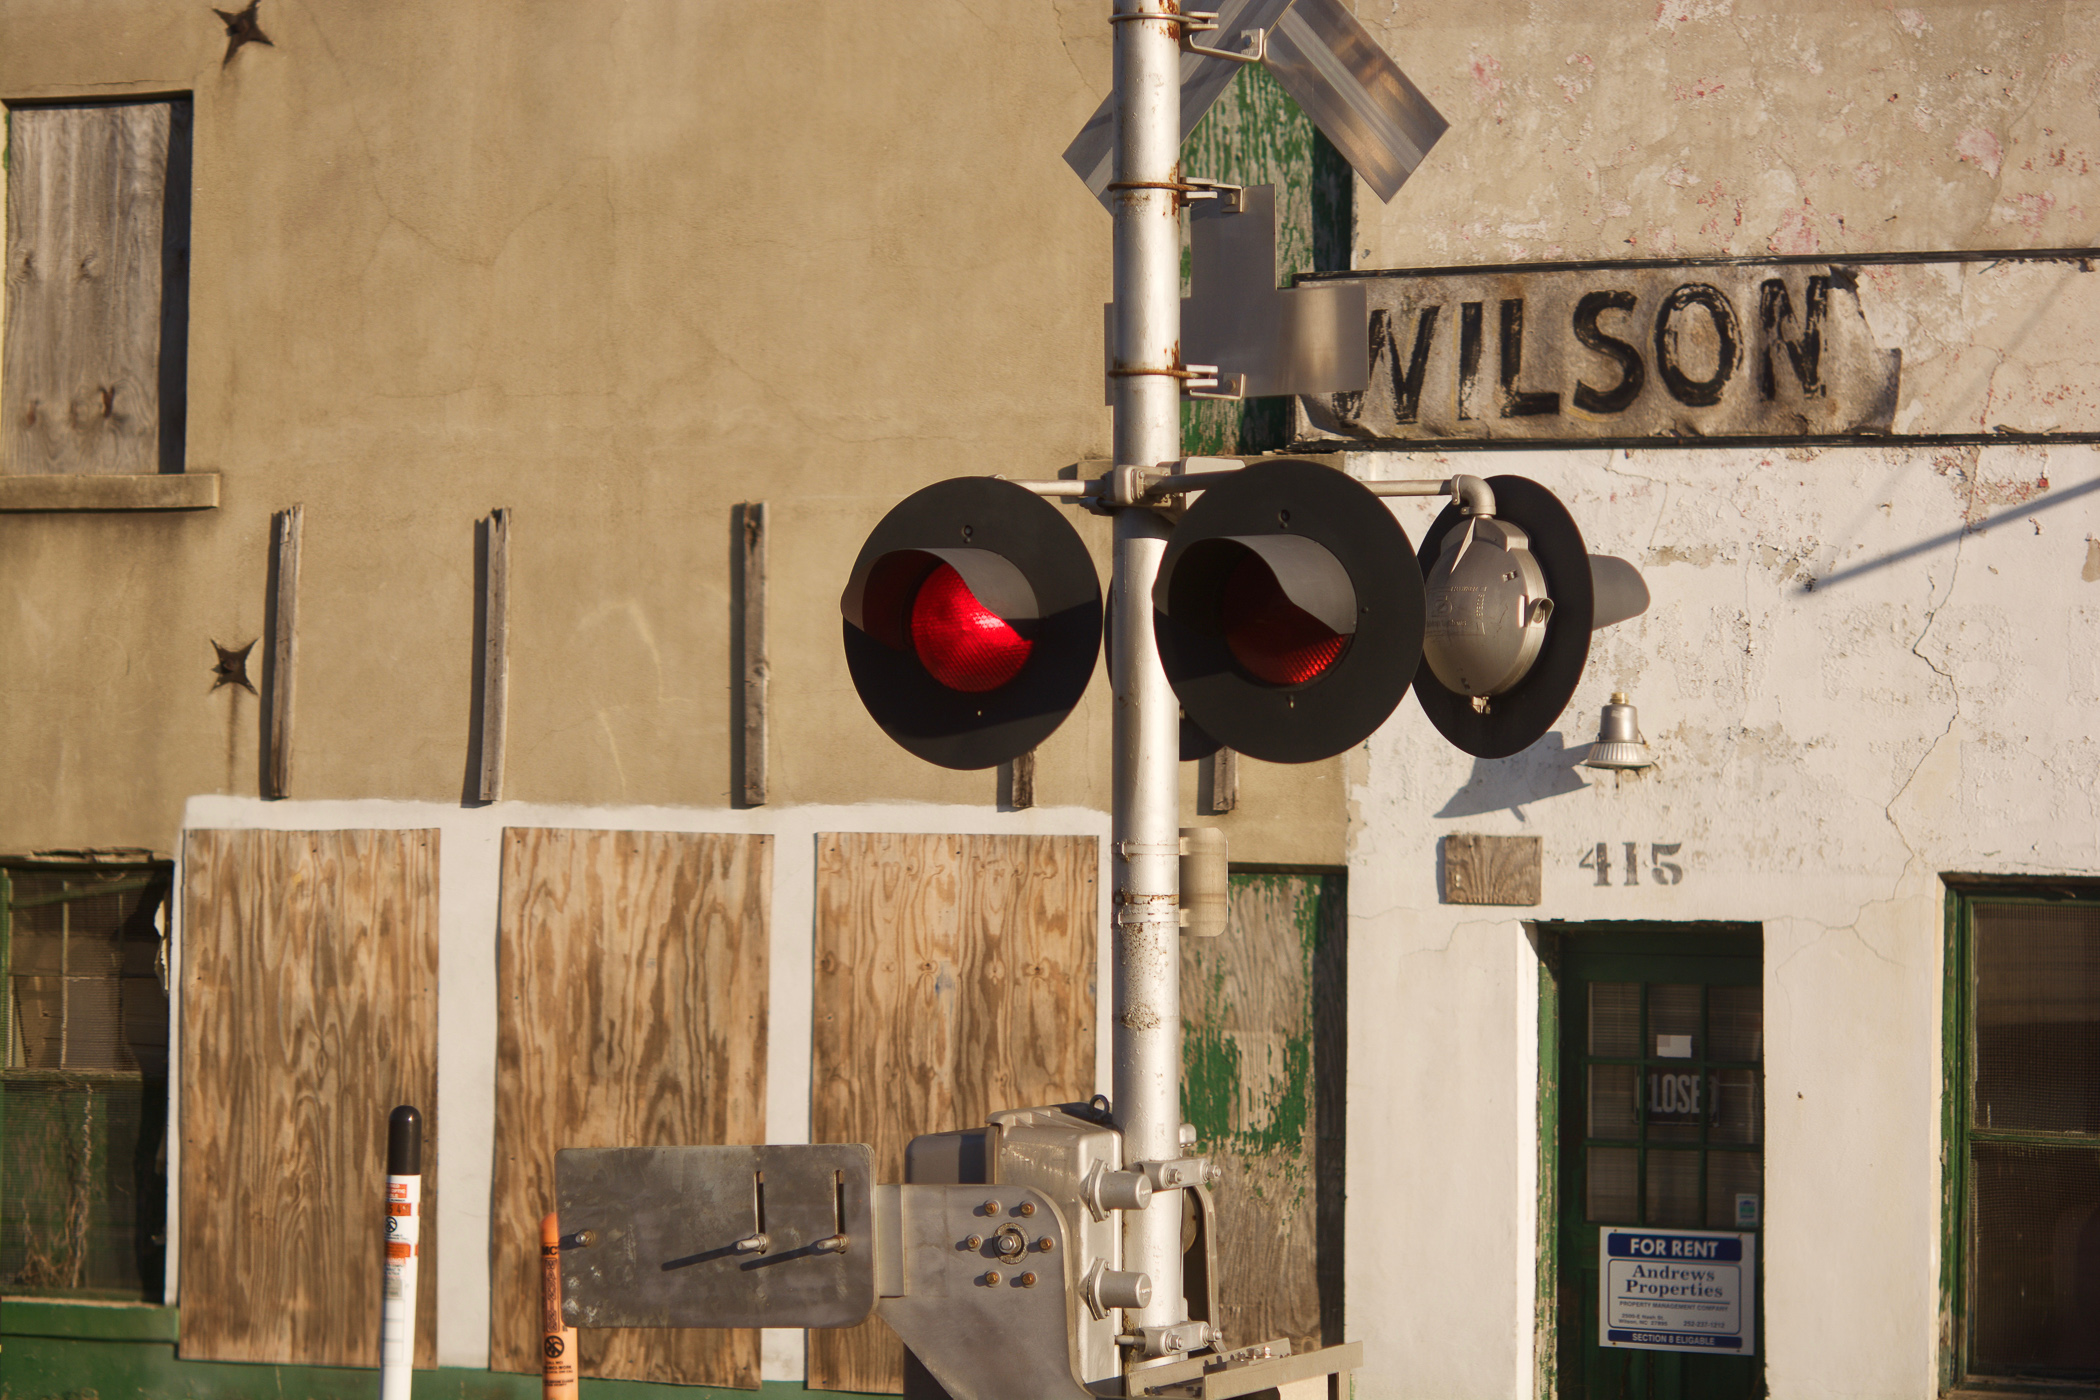 Signal lights from Northbound train approaching Wilson, NC, station.